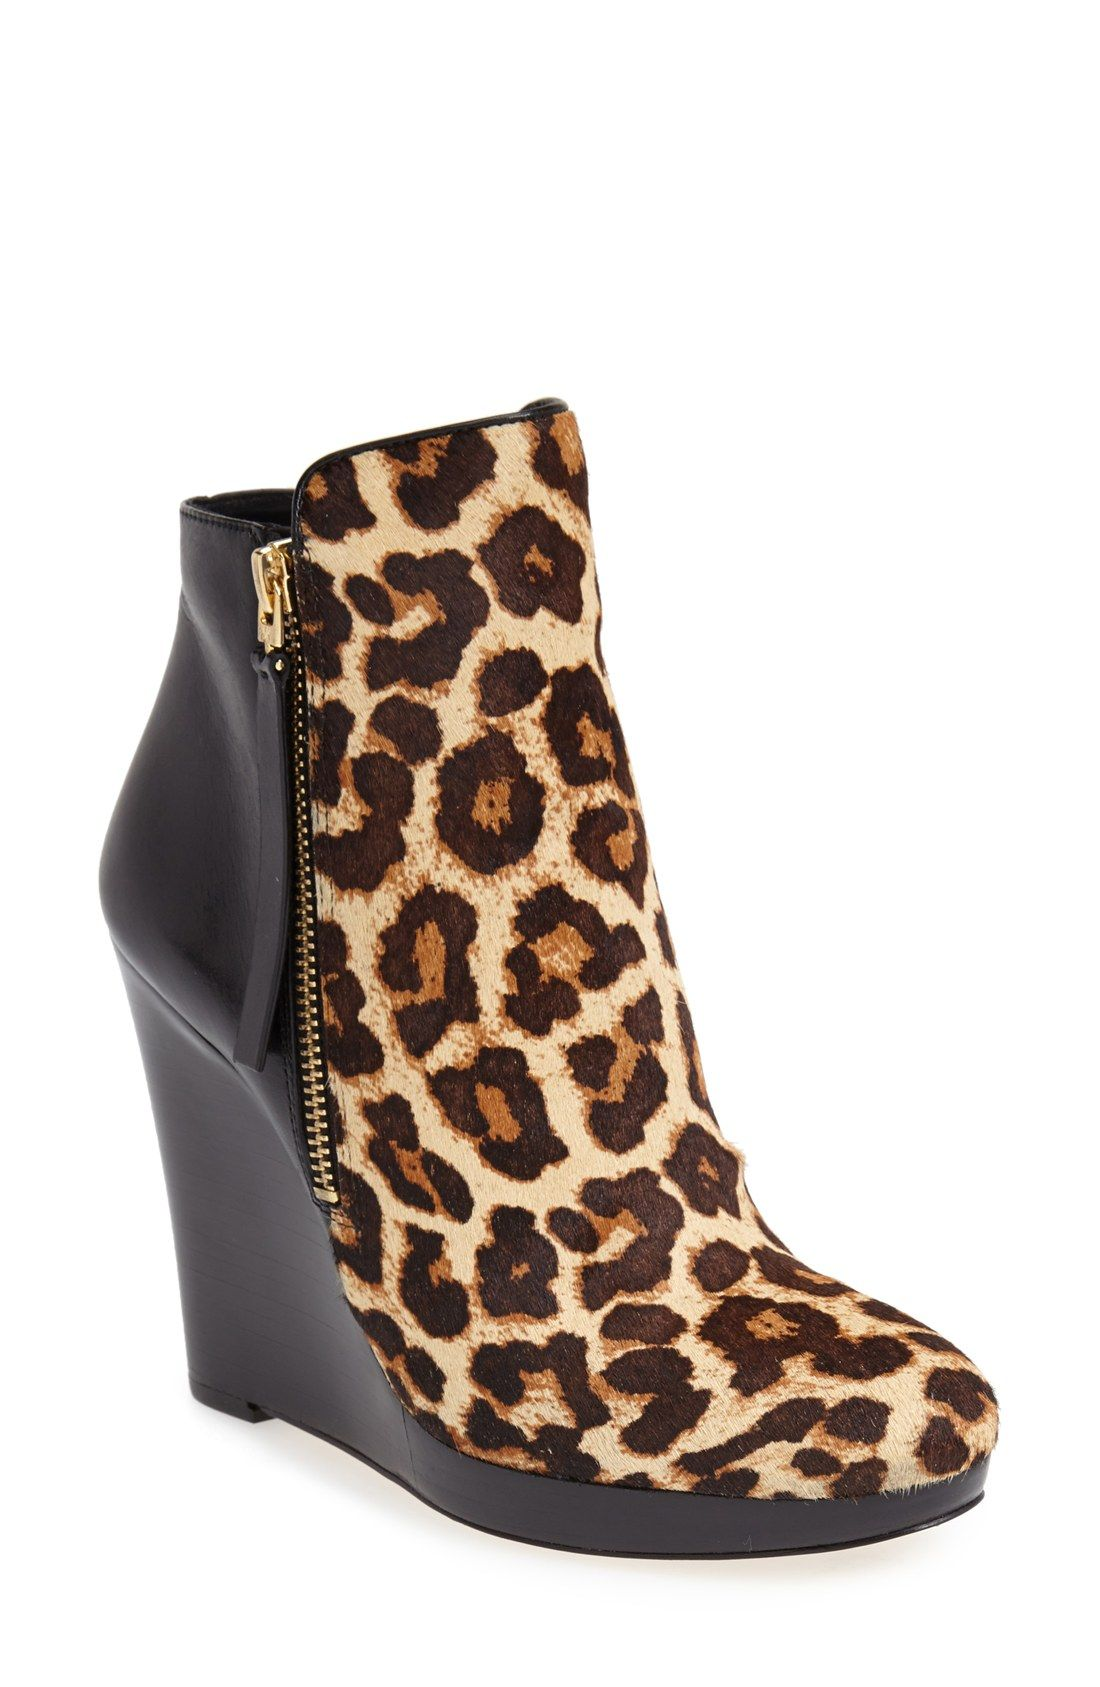 c5486057d46 Can t go wrong with extra height and a leopard print. Love these Michael  Kors booties.